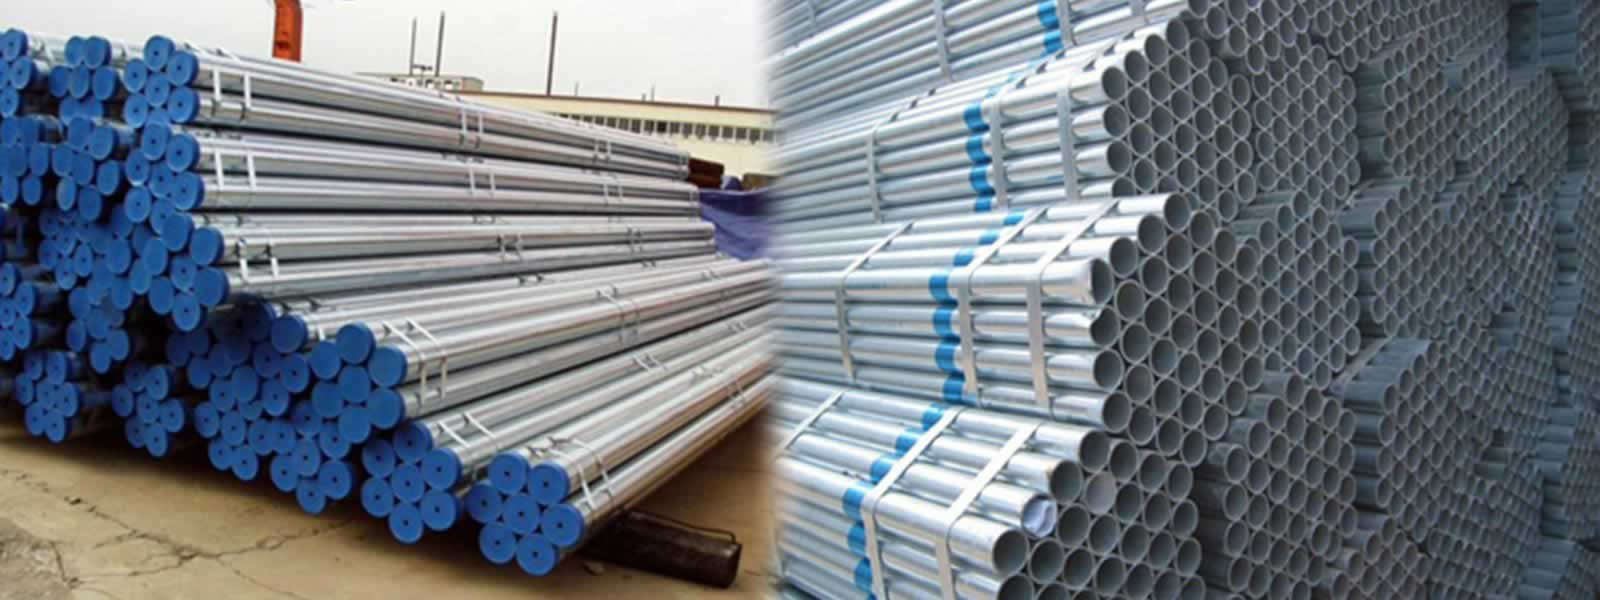 ASTM A53 ERW Steel Pipe - Carbon steel seamless pipe,ASTM